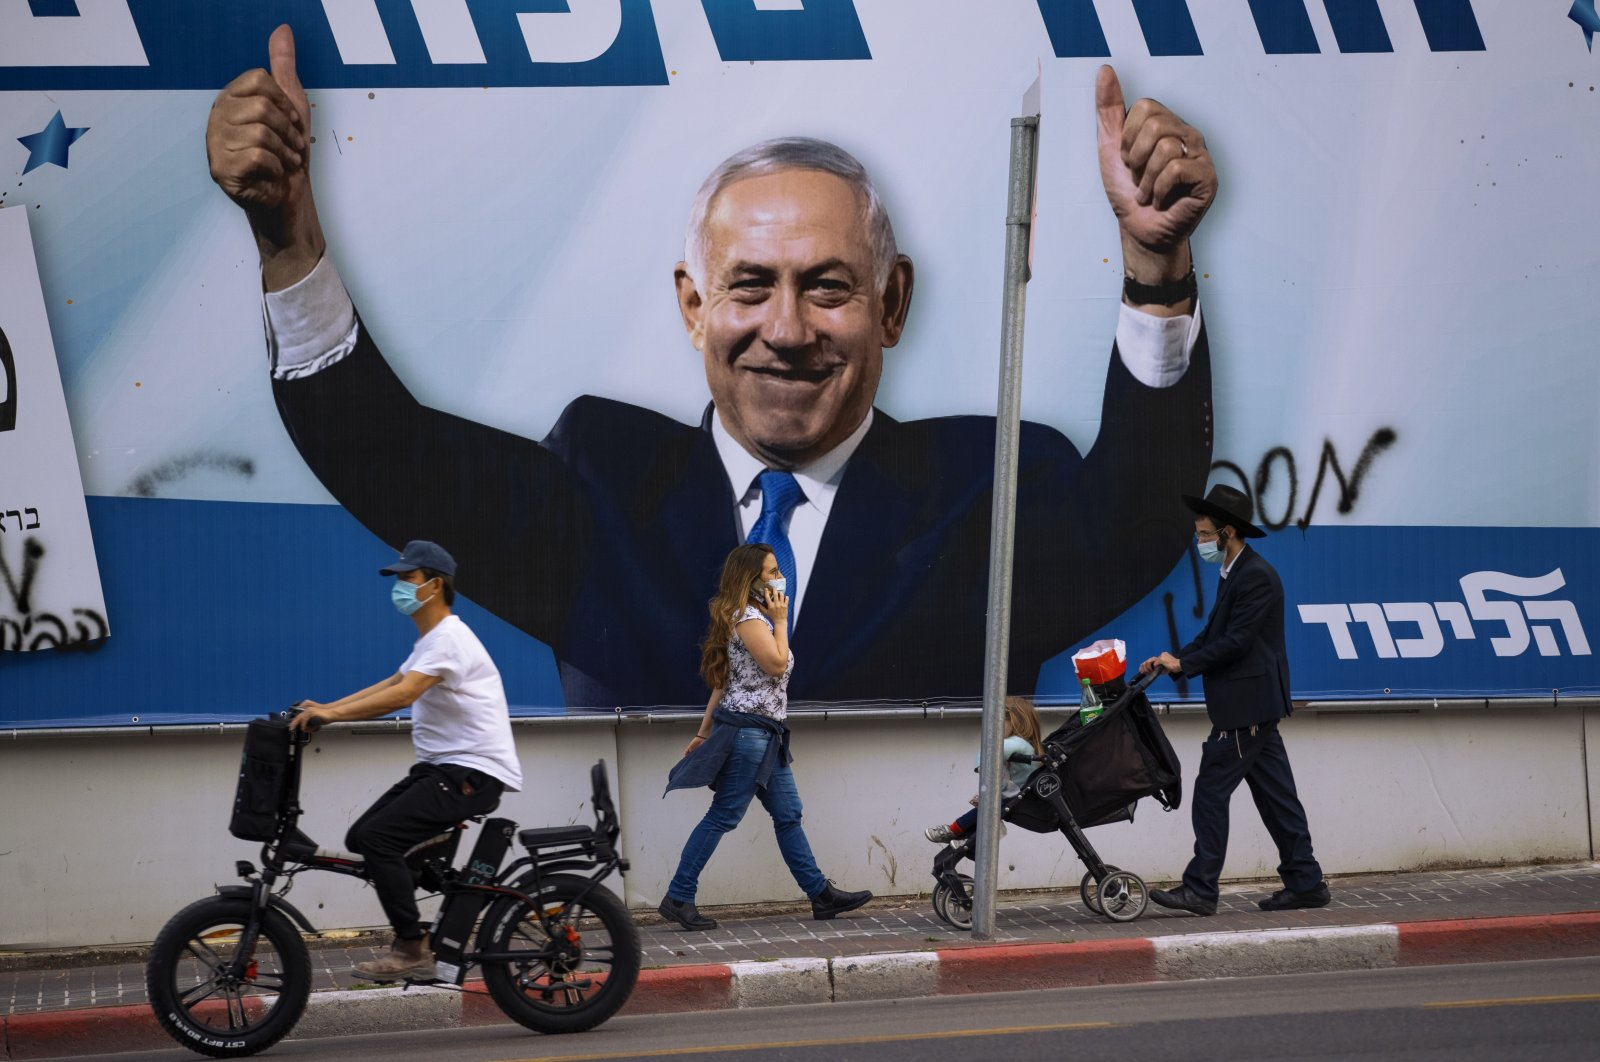 People pass an election campaign billboard for the Likud party that shows a portrait of its leader Prime Minister Benjamin Netanyahu, in Ramat Gan, Israel, March 21, 2021. (AP)